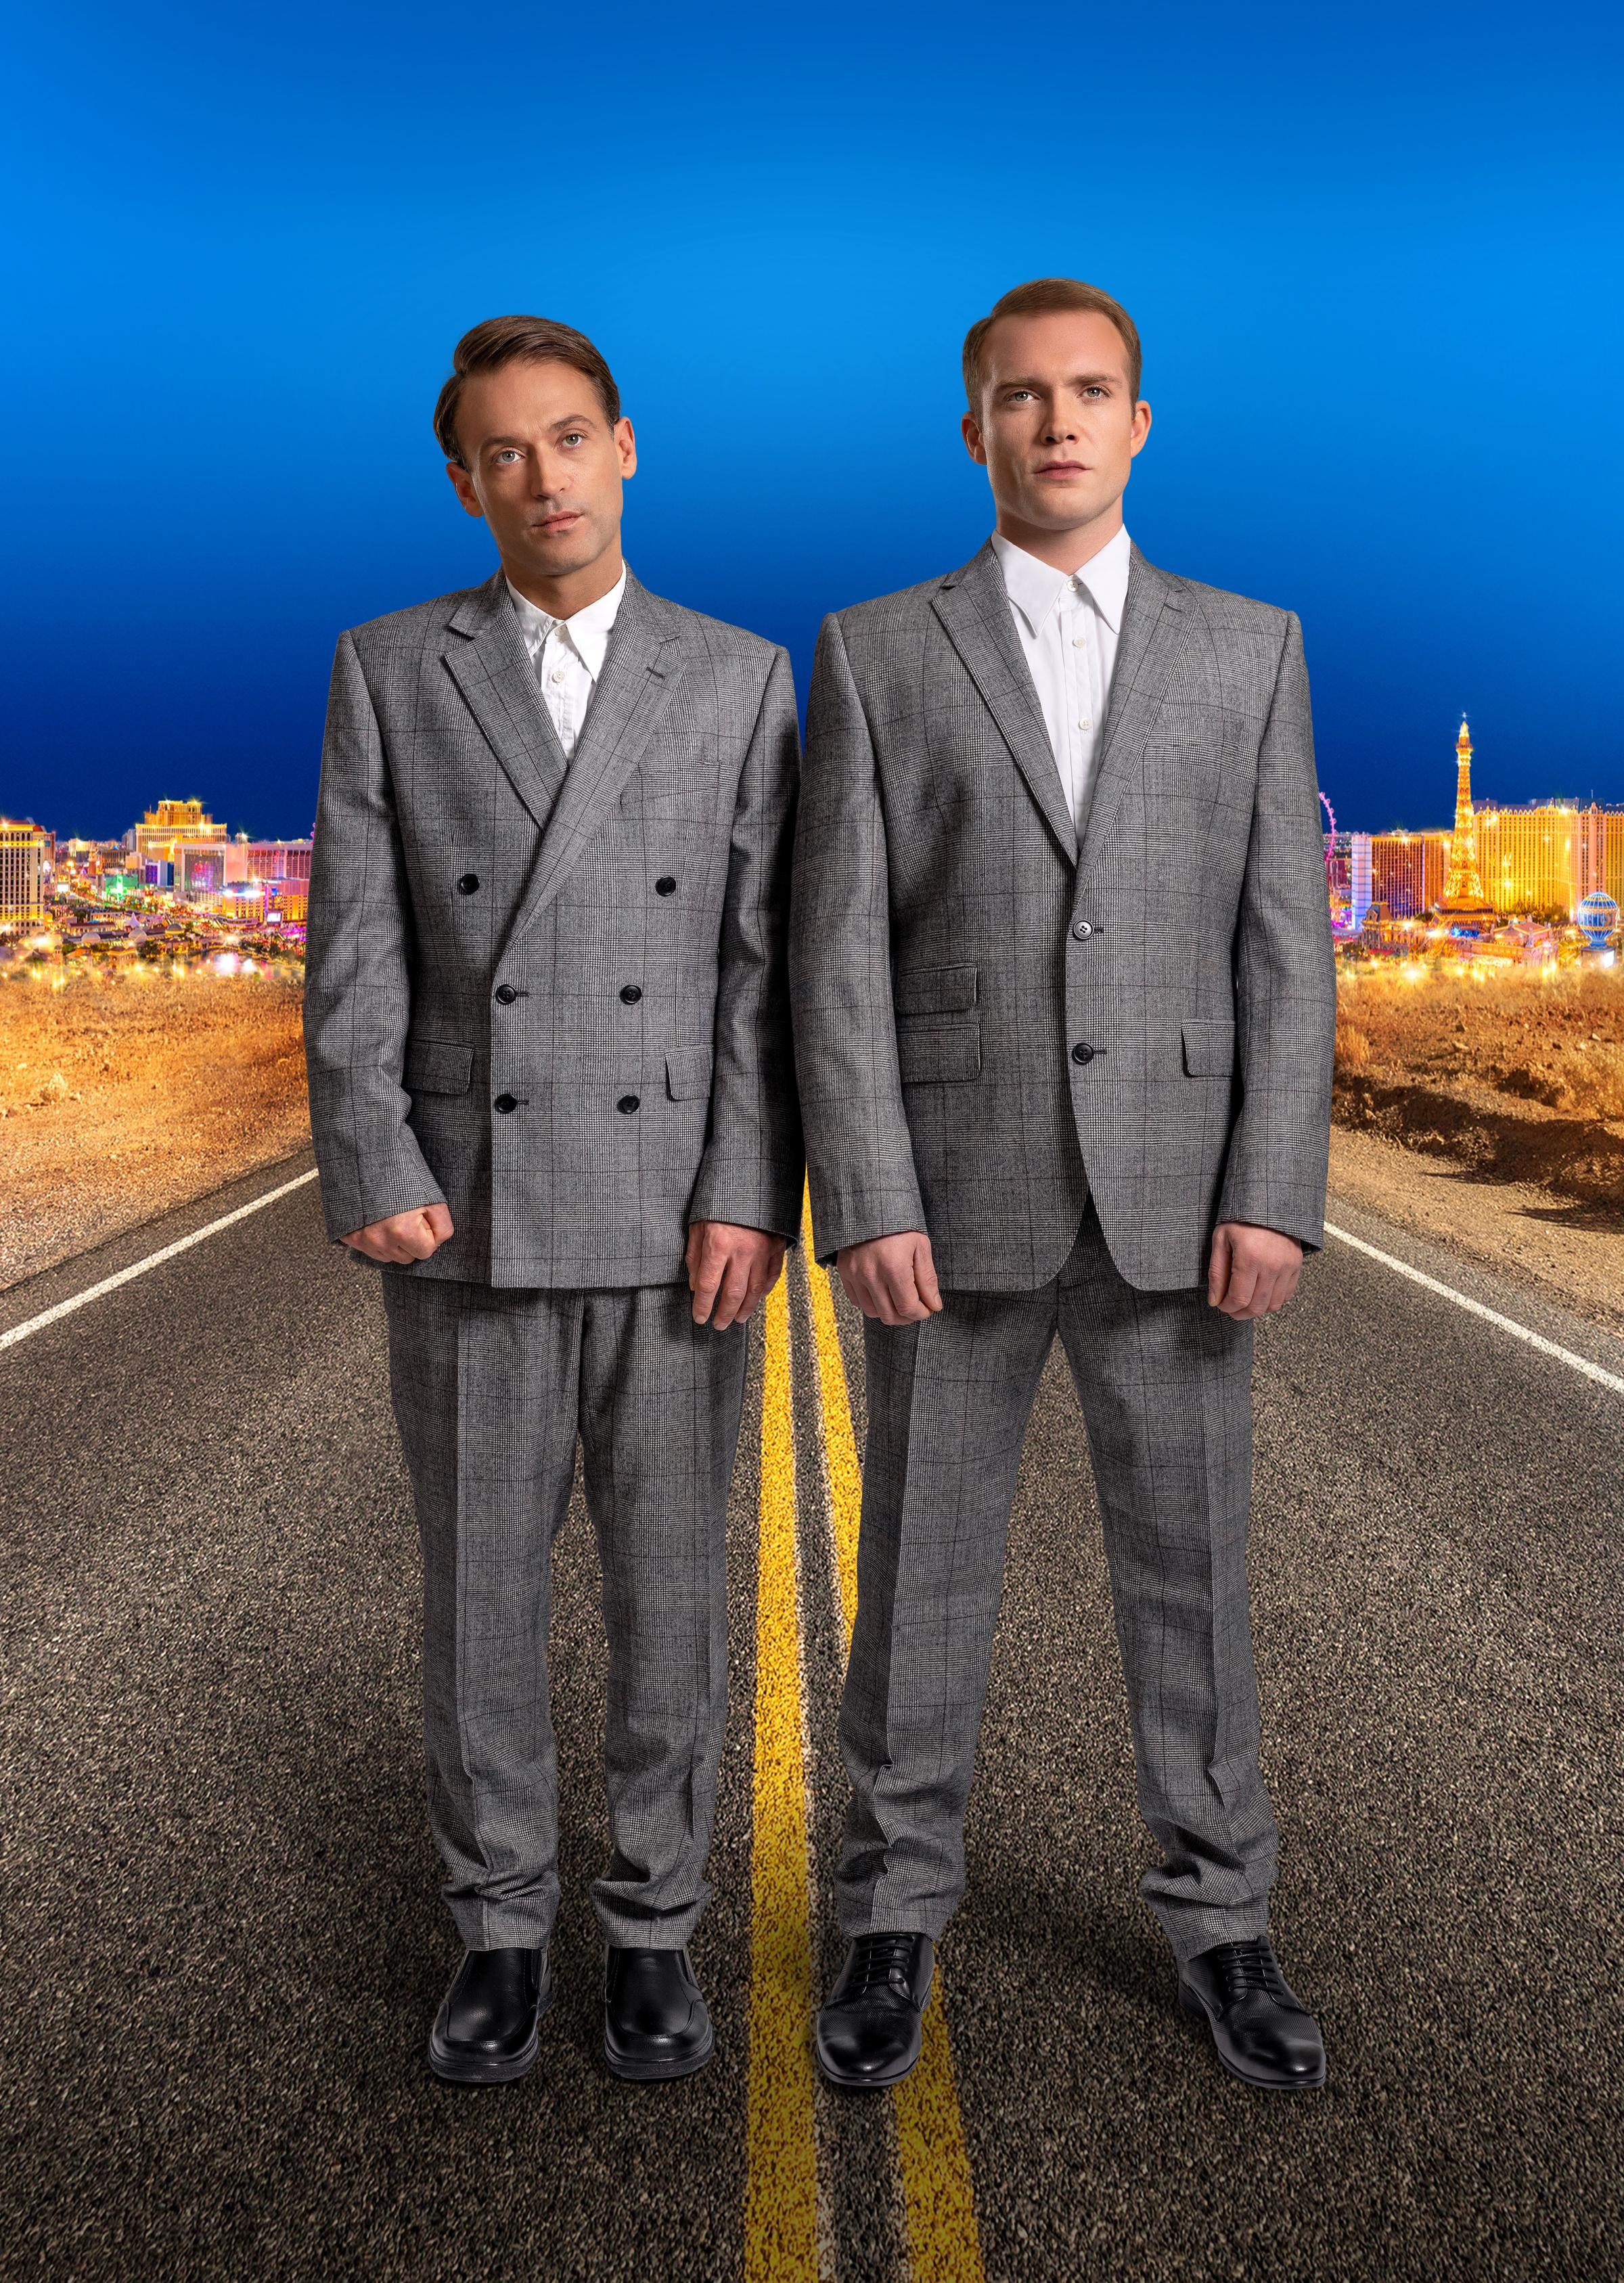 RAIN MAN: See the show in Weston-super-Mare this week